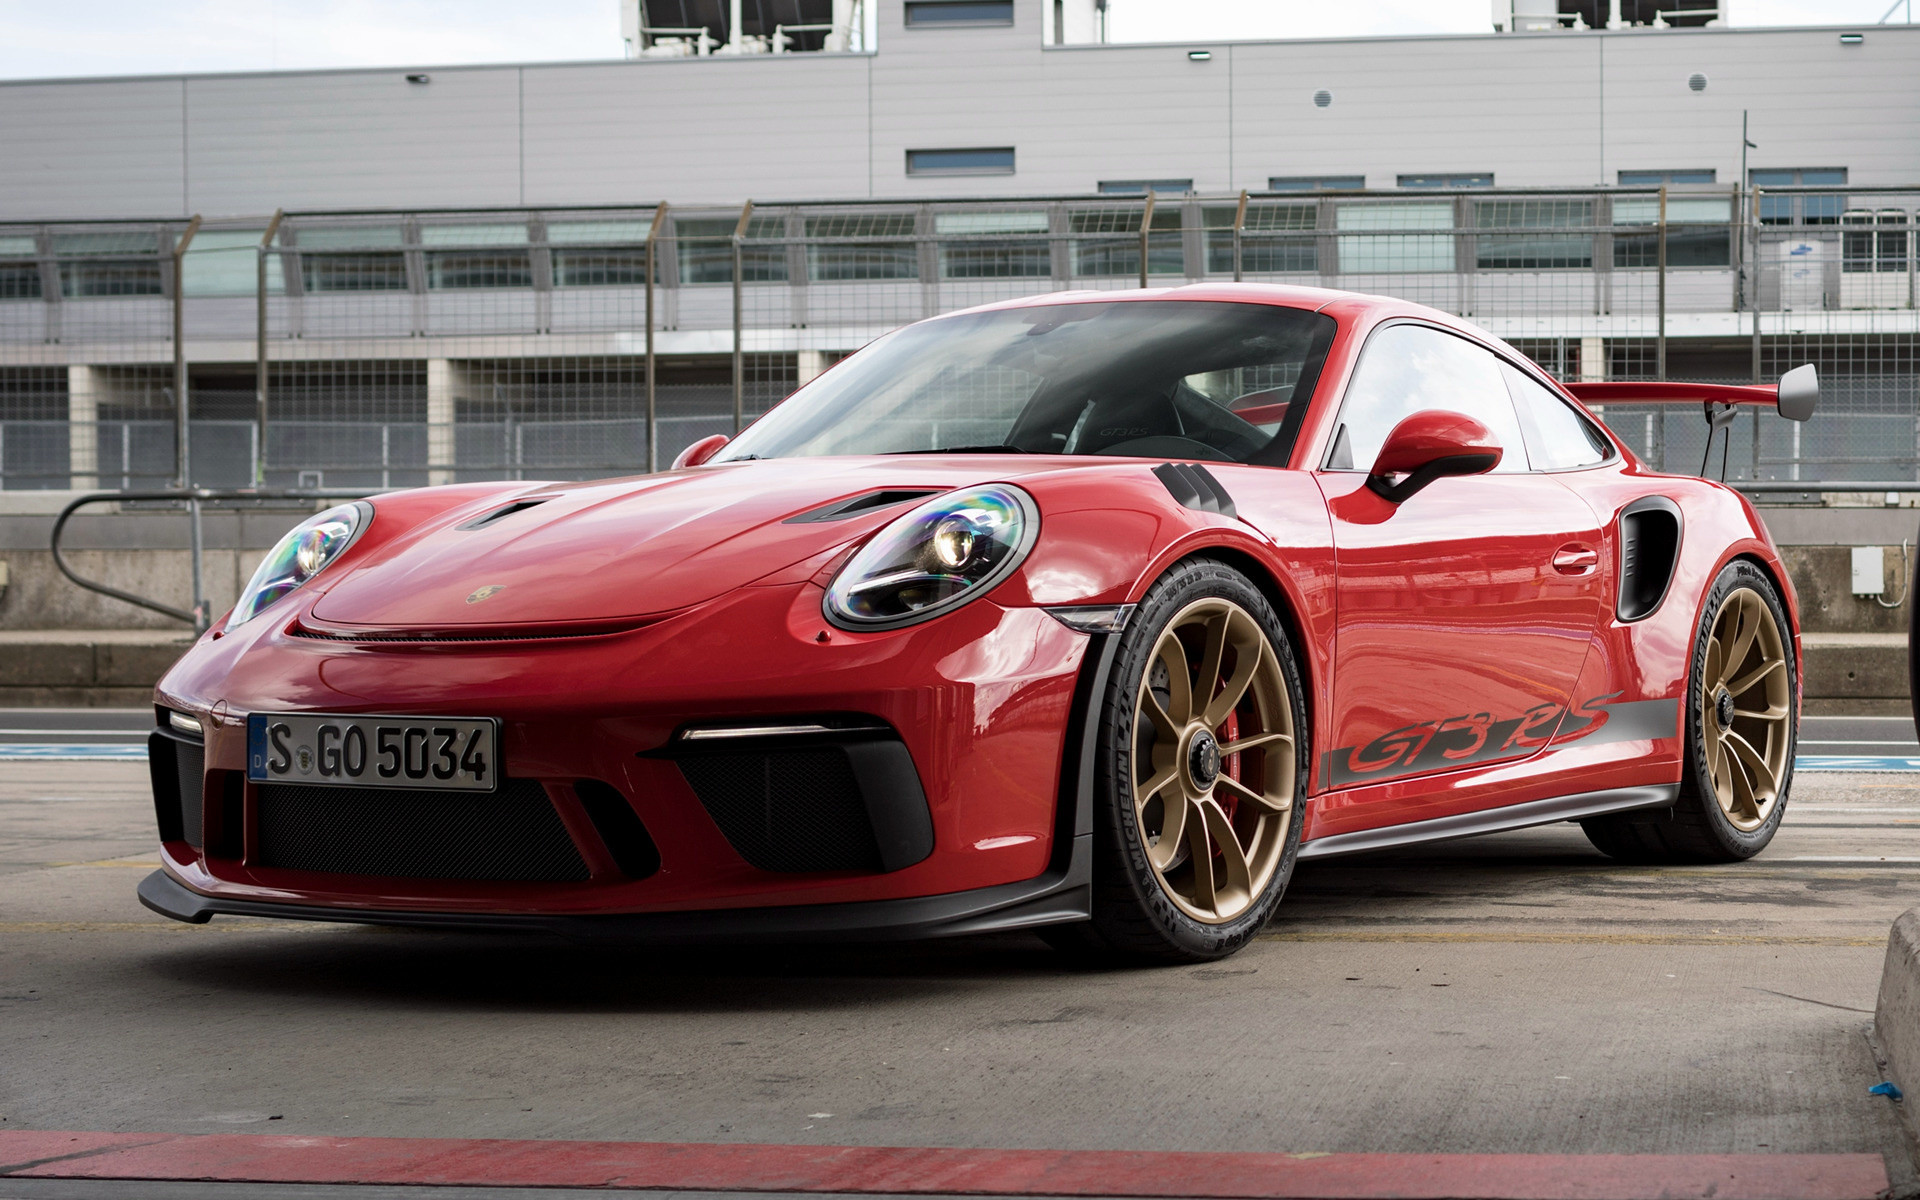 Porsche 911 Gt3 Rs Wallpapers (76+ background pictures)